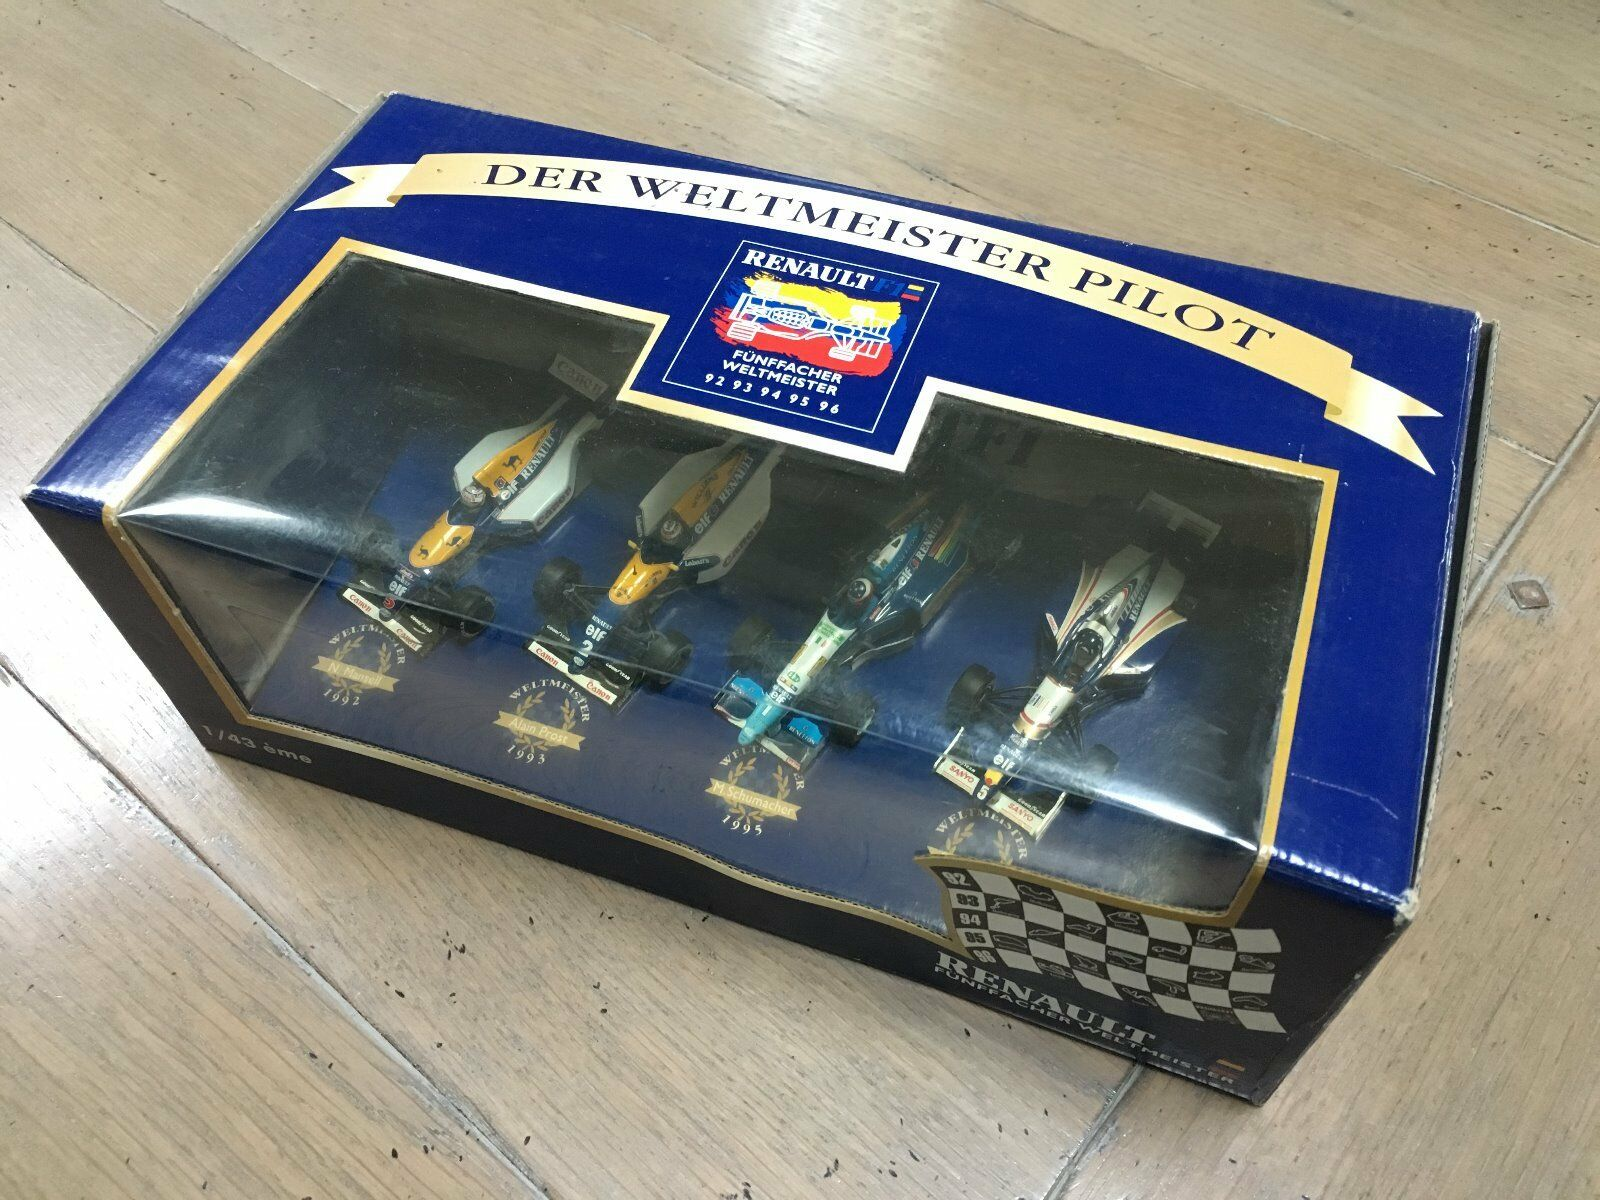 Renault Williams Benetton with the MSC 17 SCHUMACHER World Champion Minichamps